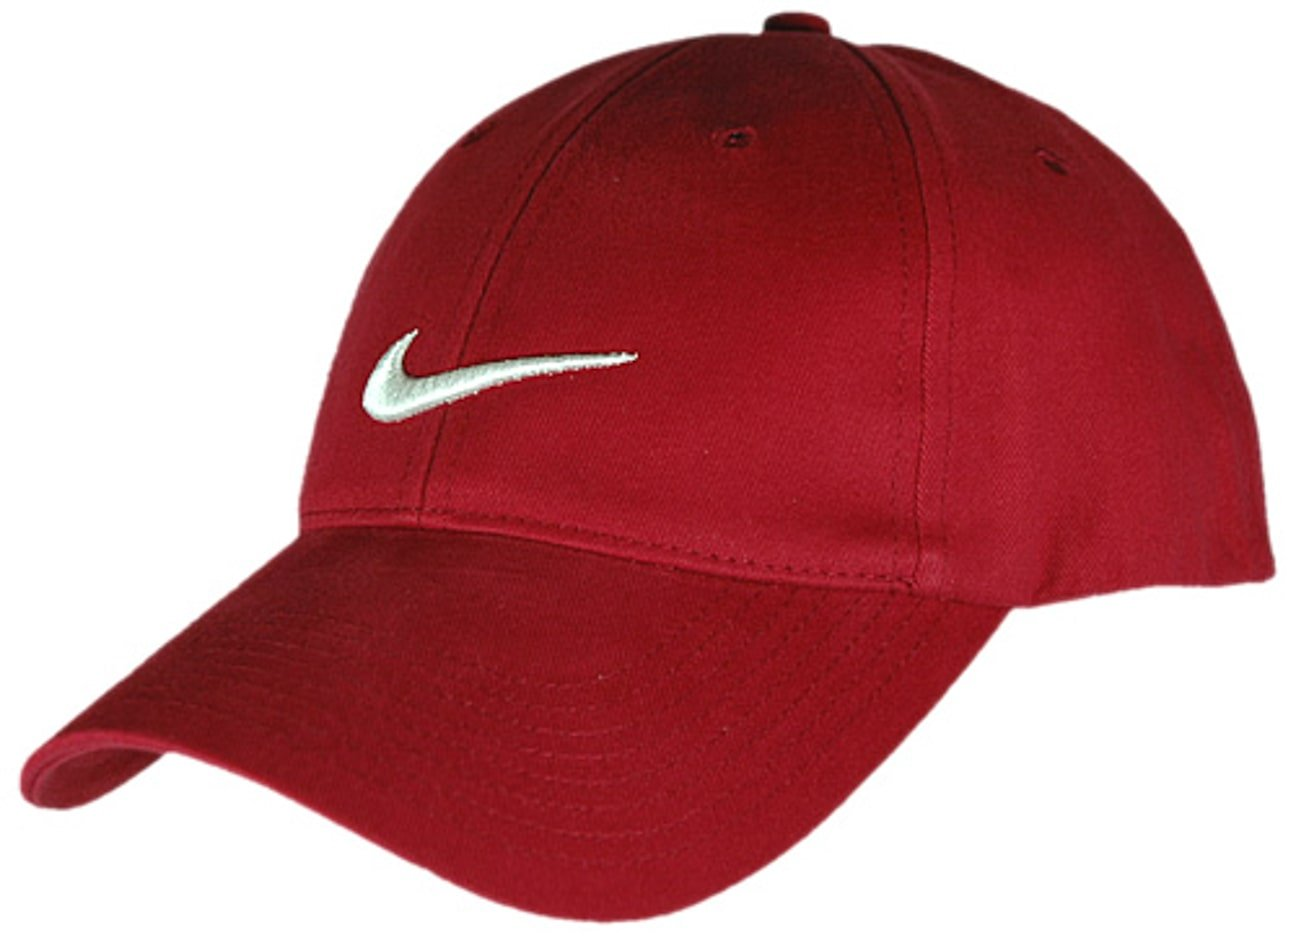 55b955f14d7a2 Structured Swoosh Cap by Nike - red 1 ...